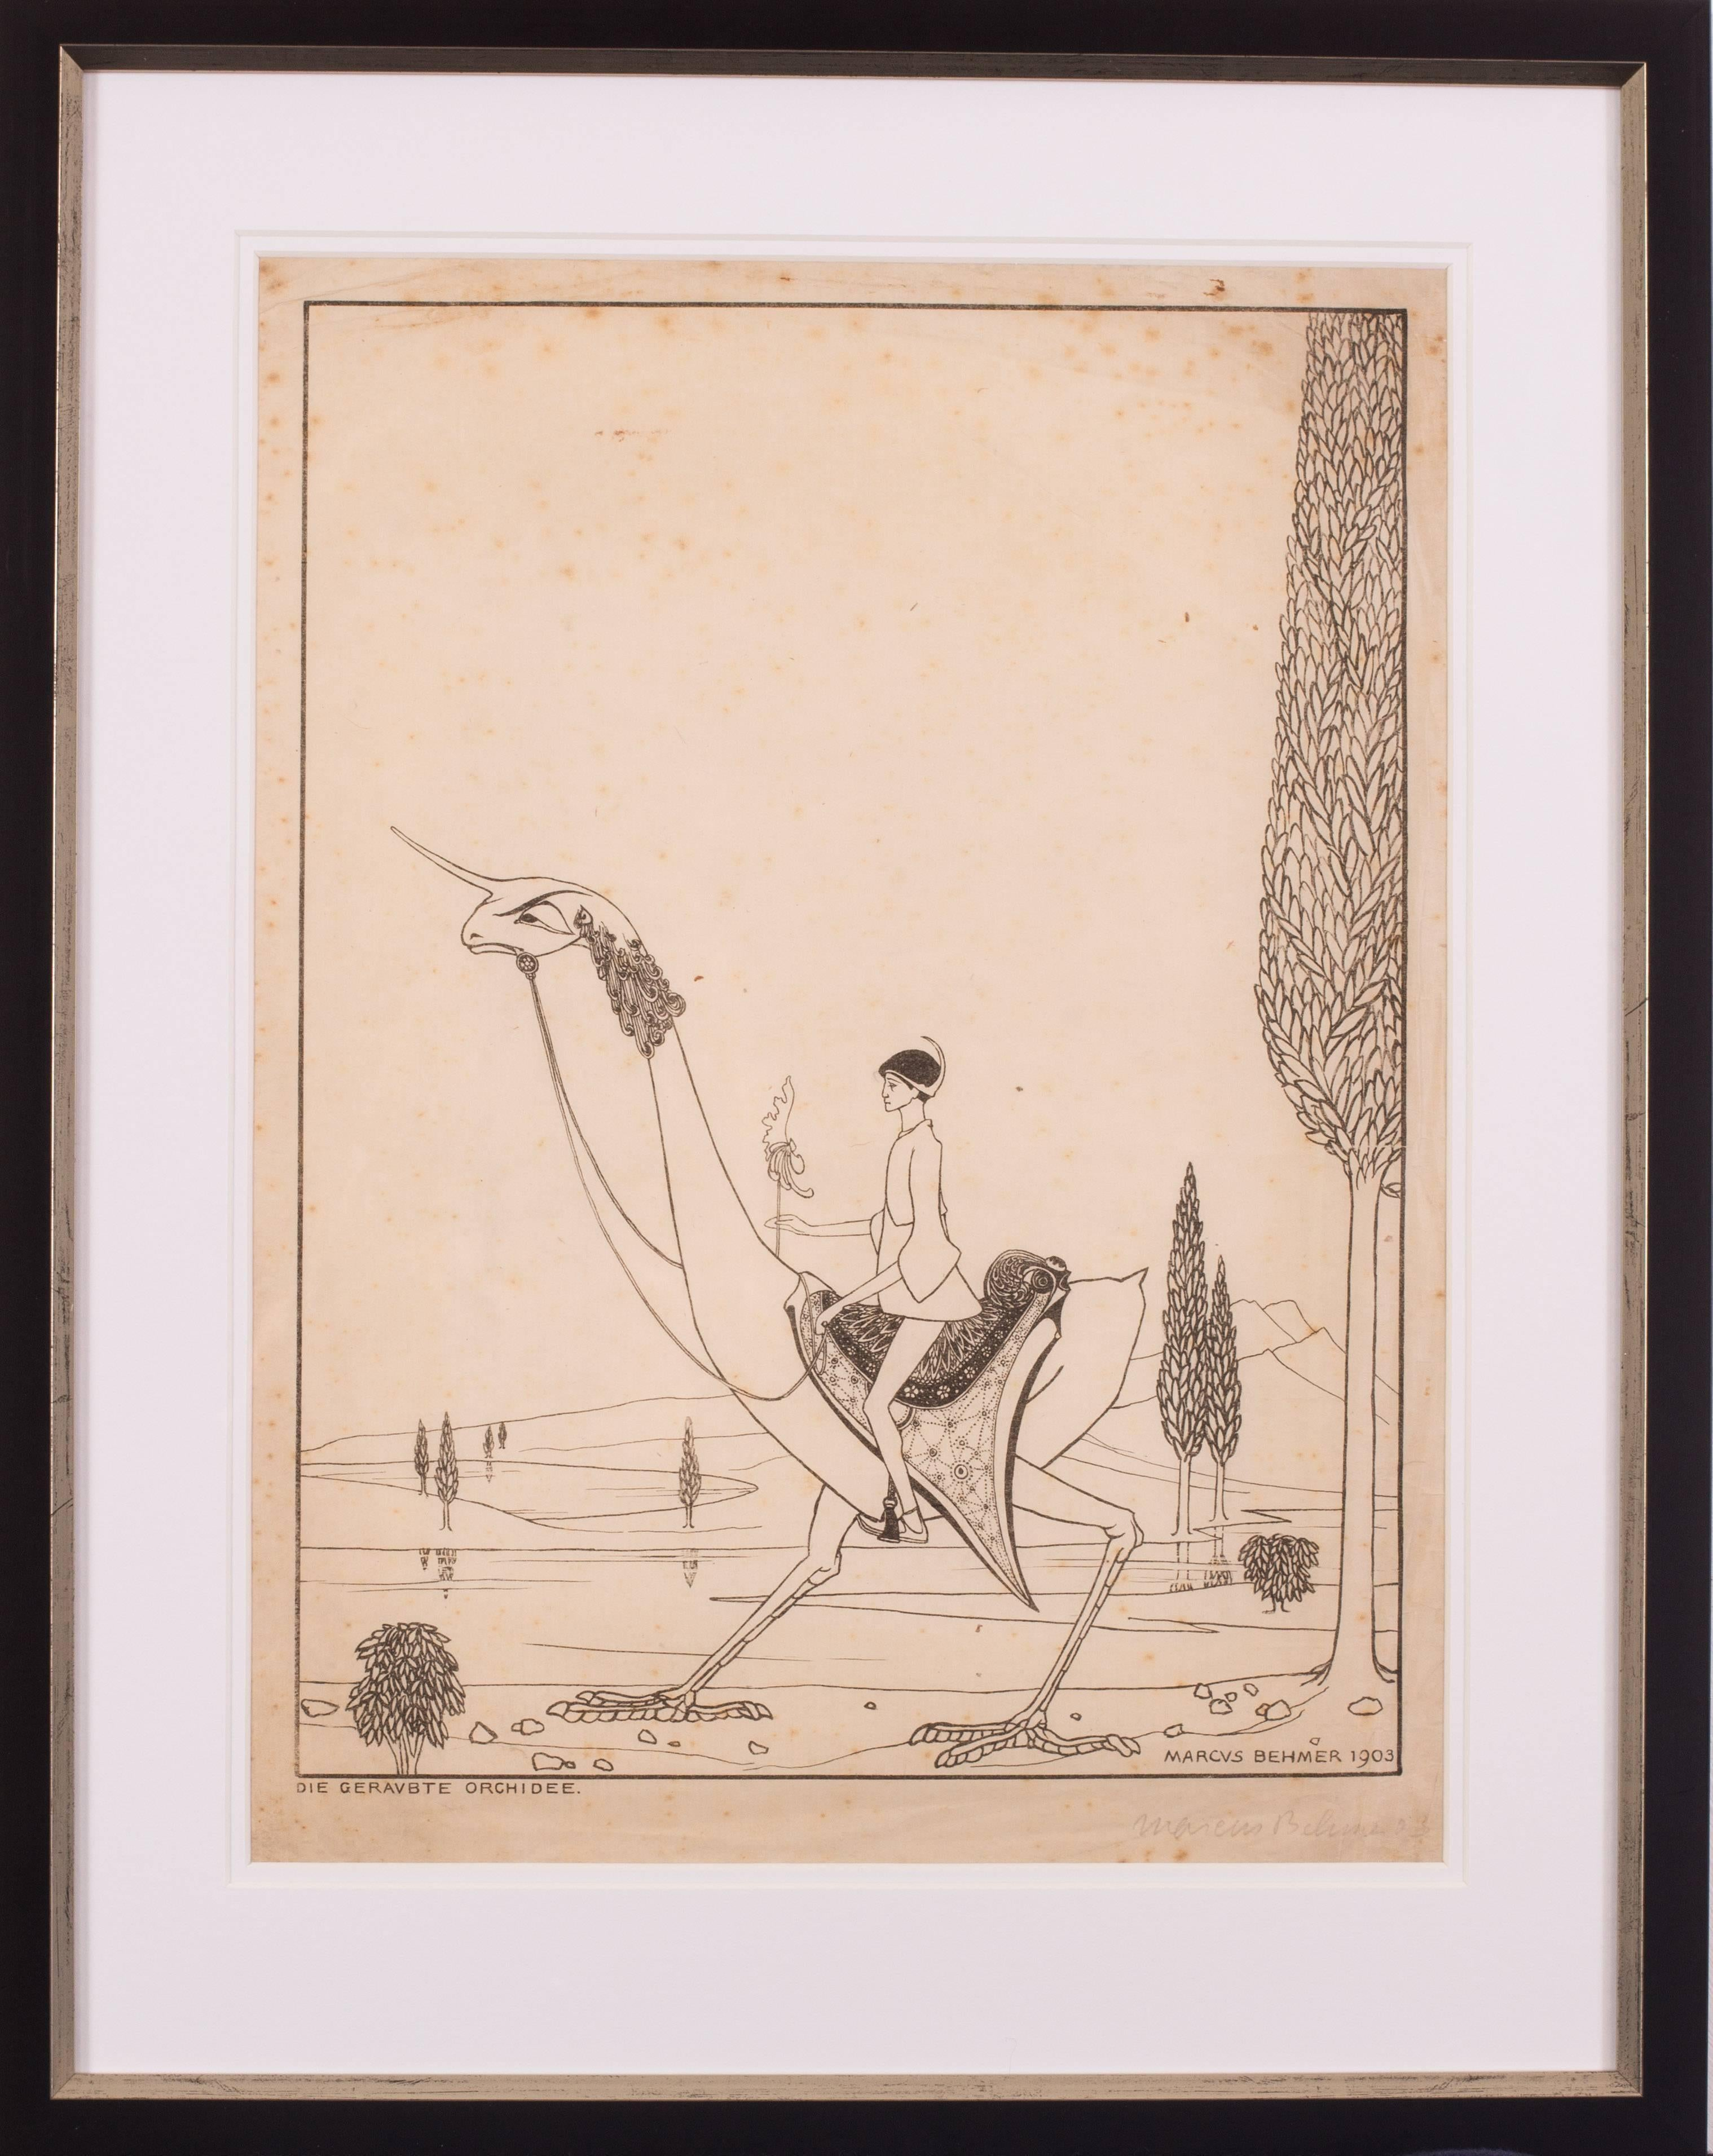 Original early 20th Century German signed lithograph by Marcus Behmer